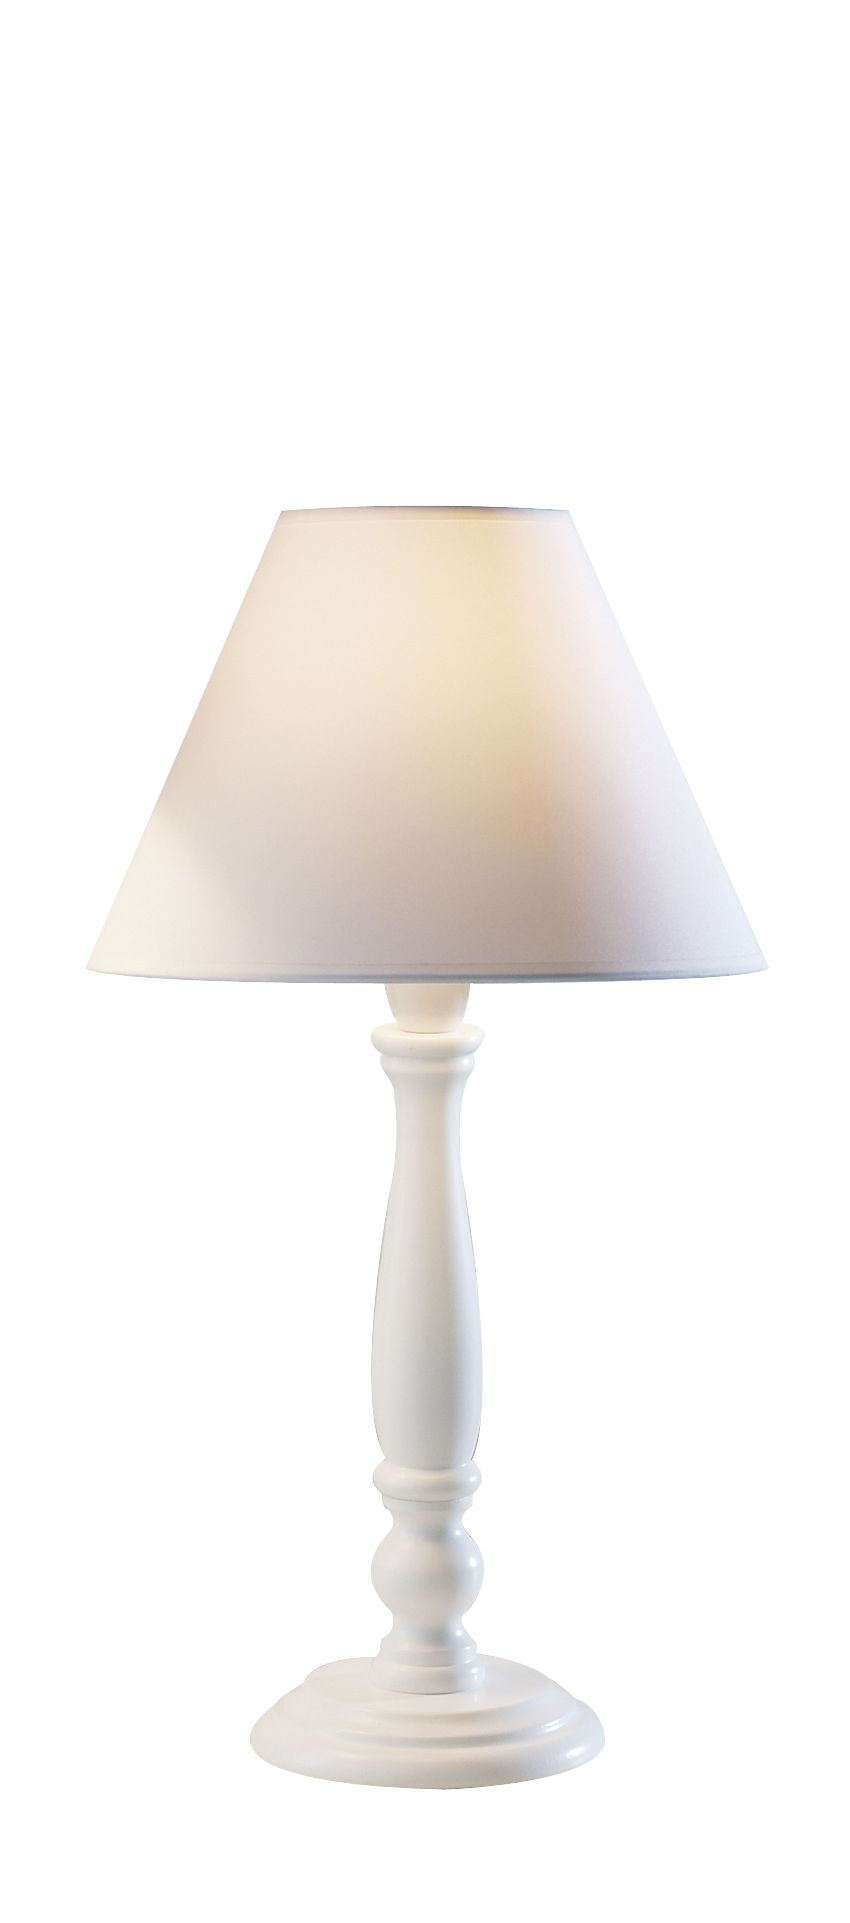 small regal white table lamp shade reg422 103586. Black Bedroom Furniture Sets. Home Design Ideas